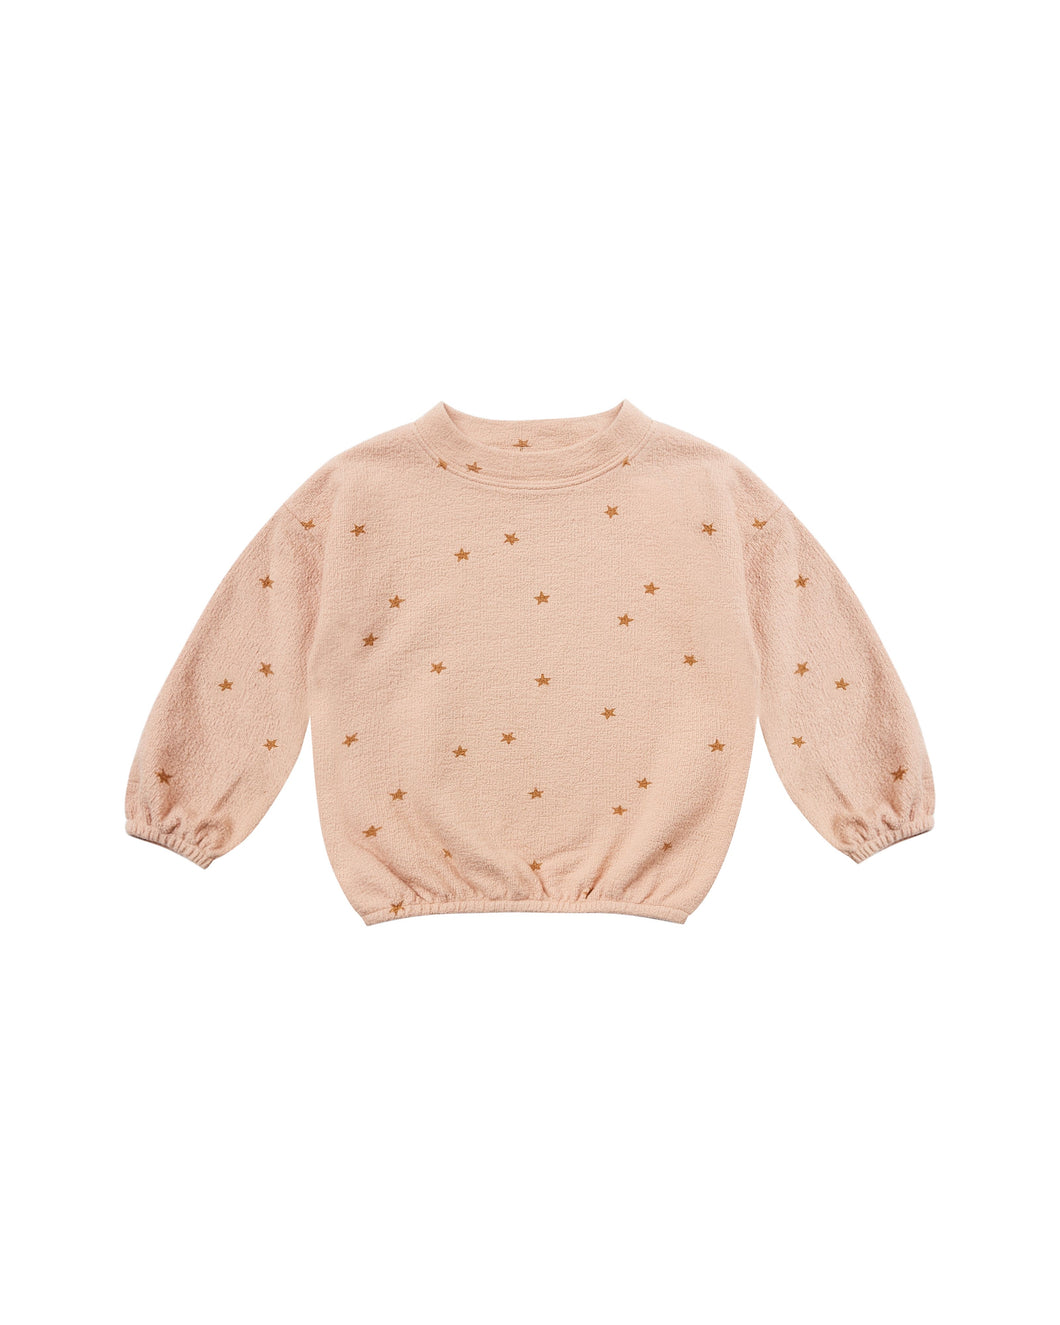 Star slouchy pullover sweater - rose